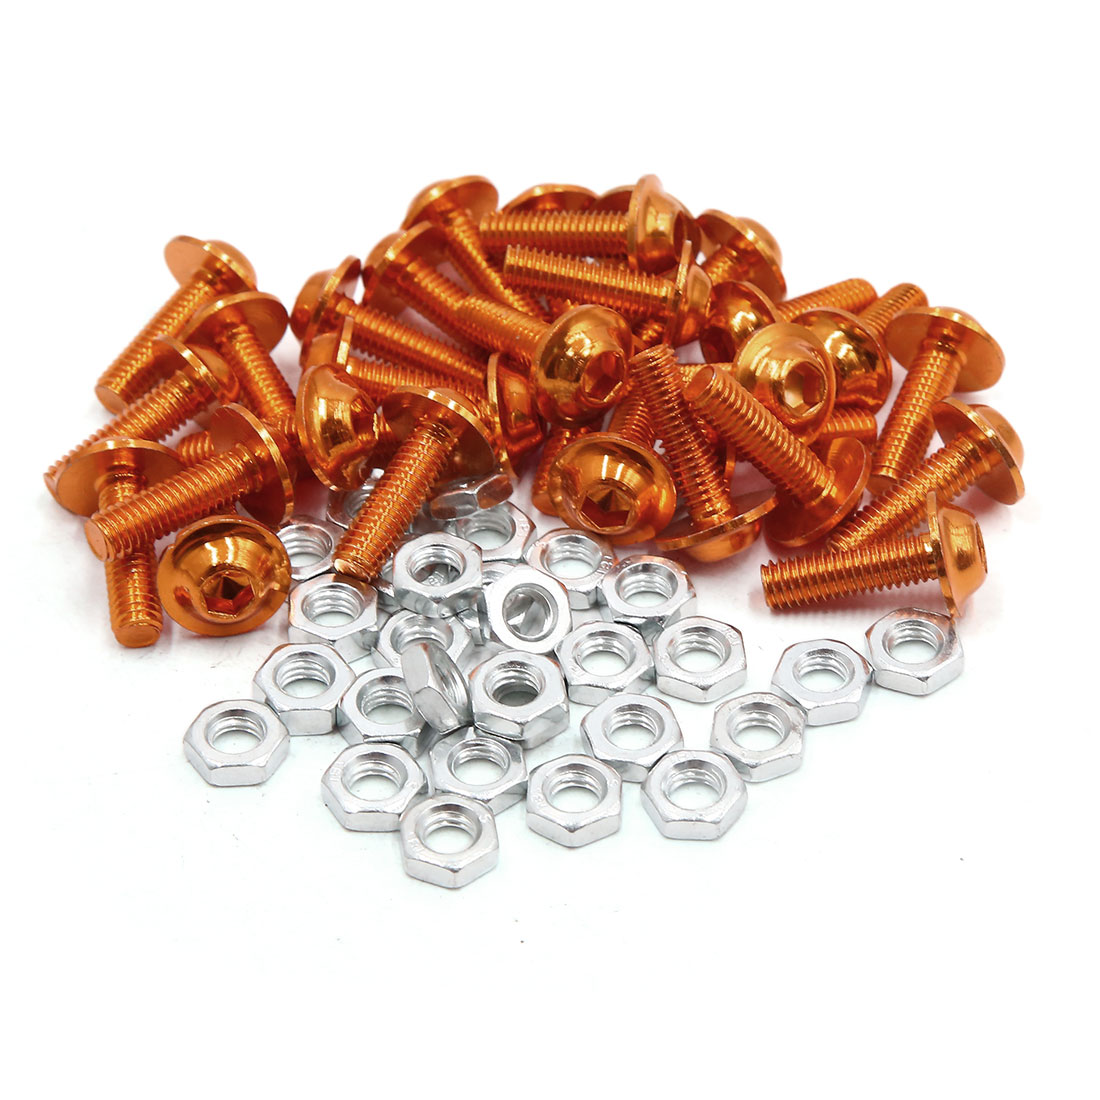 30pcs M6 Orange Aluminum Alloy Hex Socket Head Motorcycle Bolts Screws Nuts